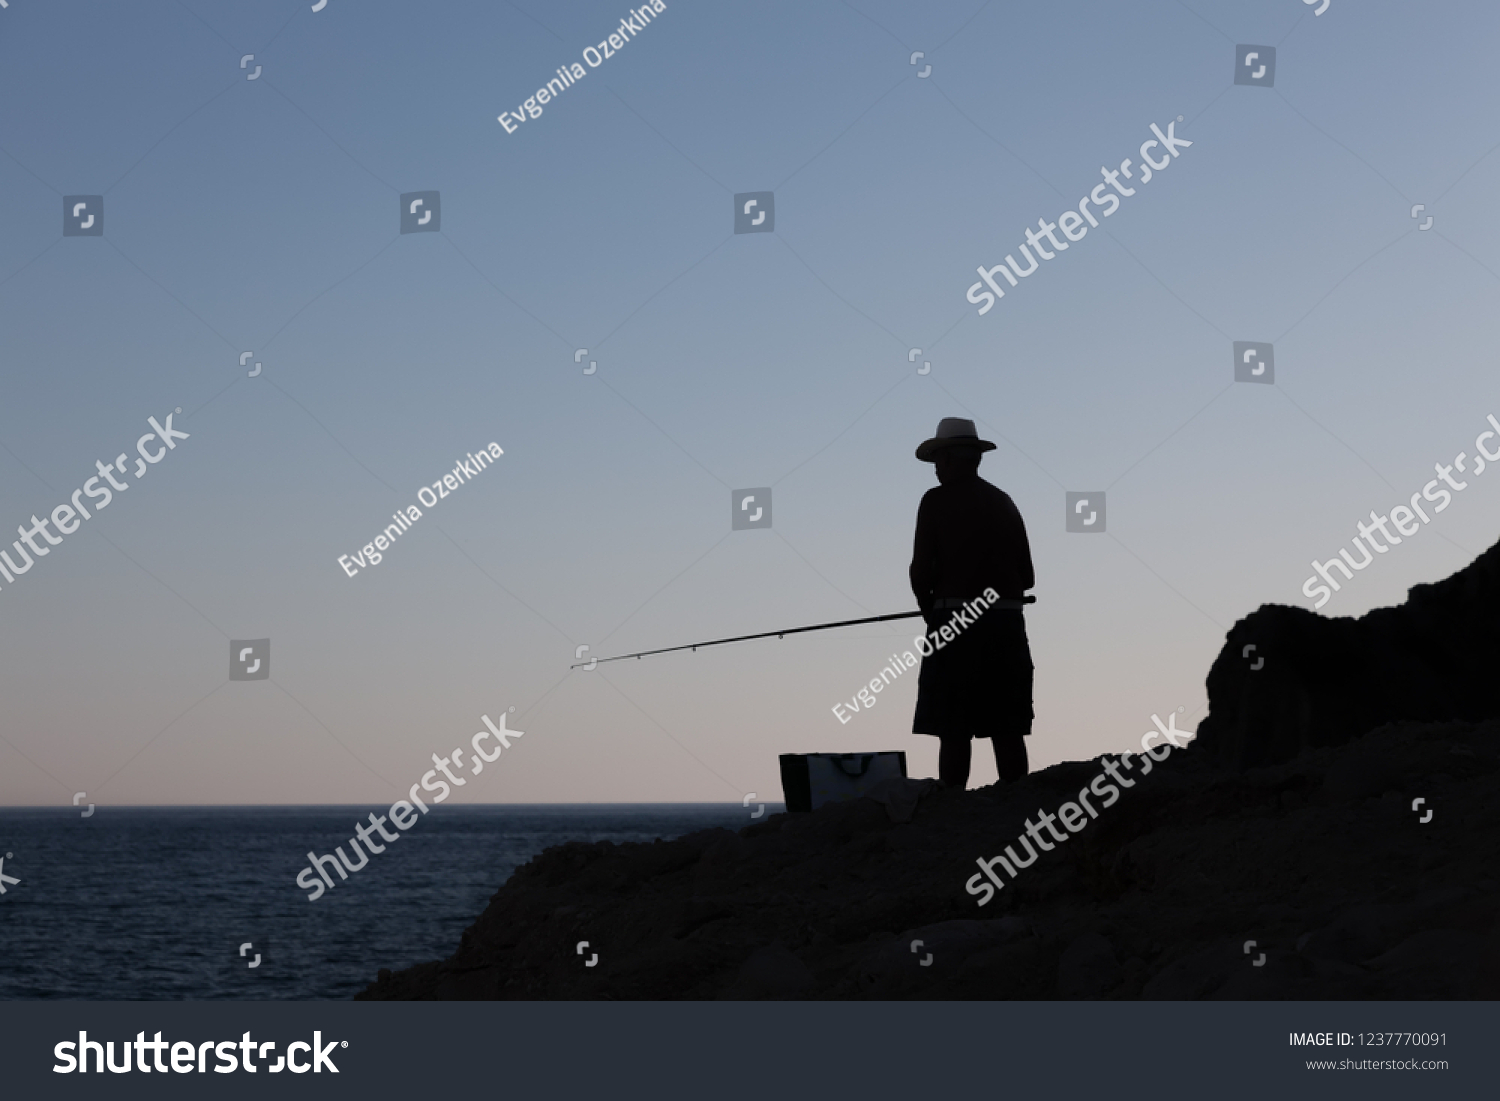 stock-photo-silhouette-of-a-fisherman-on